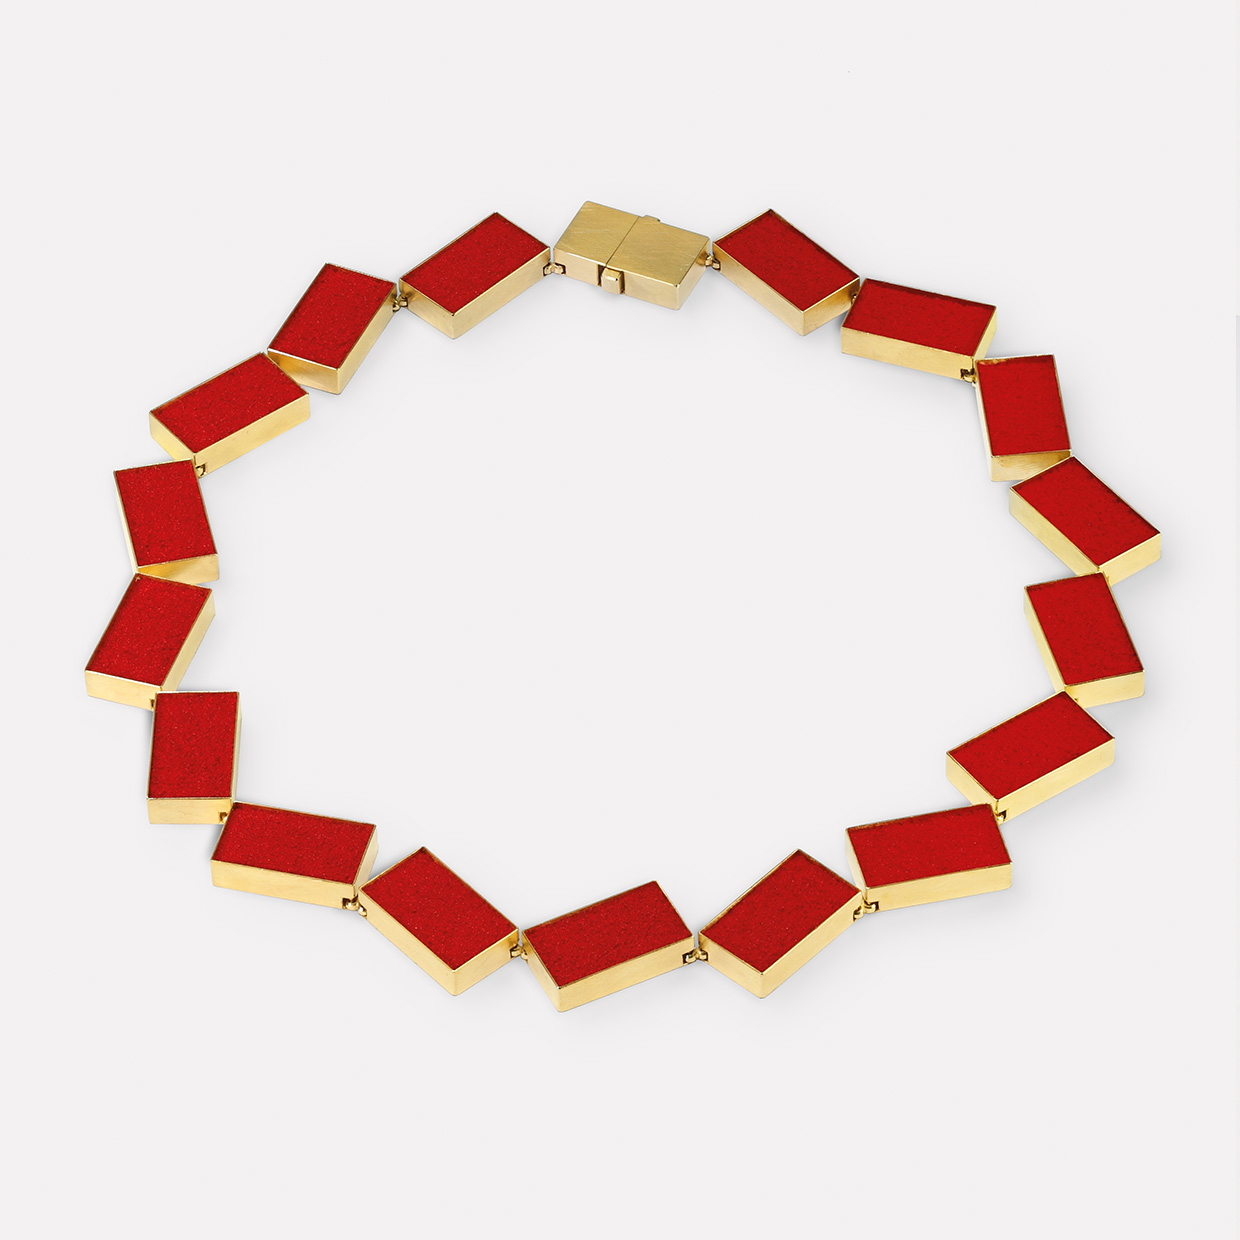 necklace  2017  gold  750  red  pigment  520x25  mm